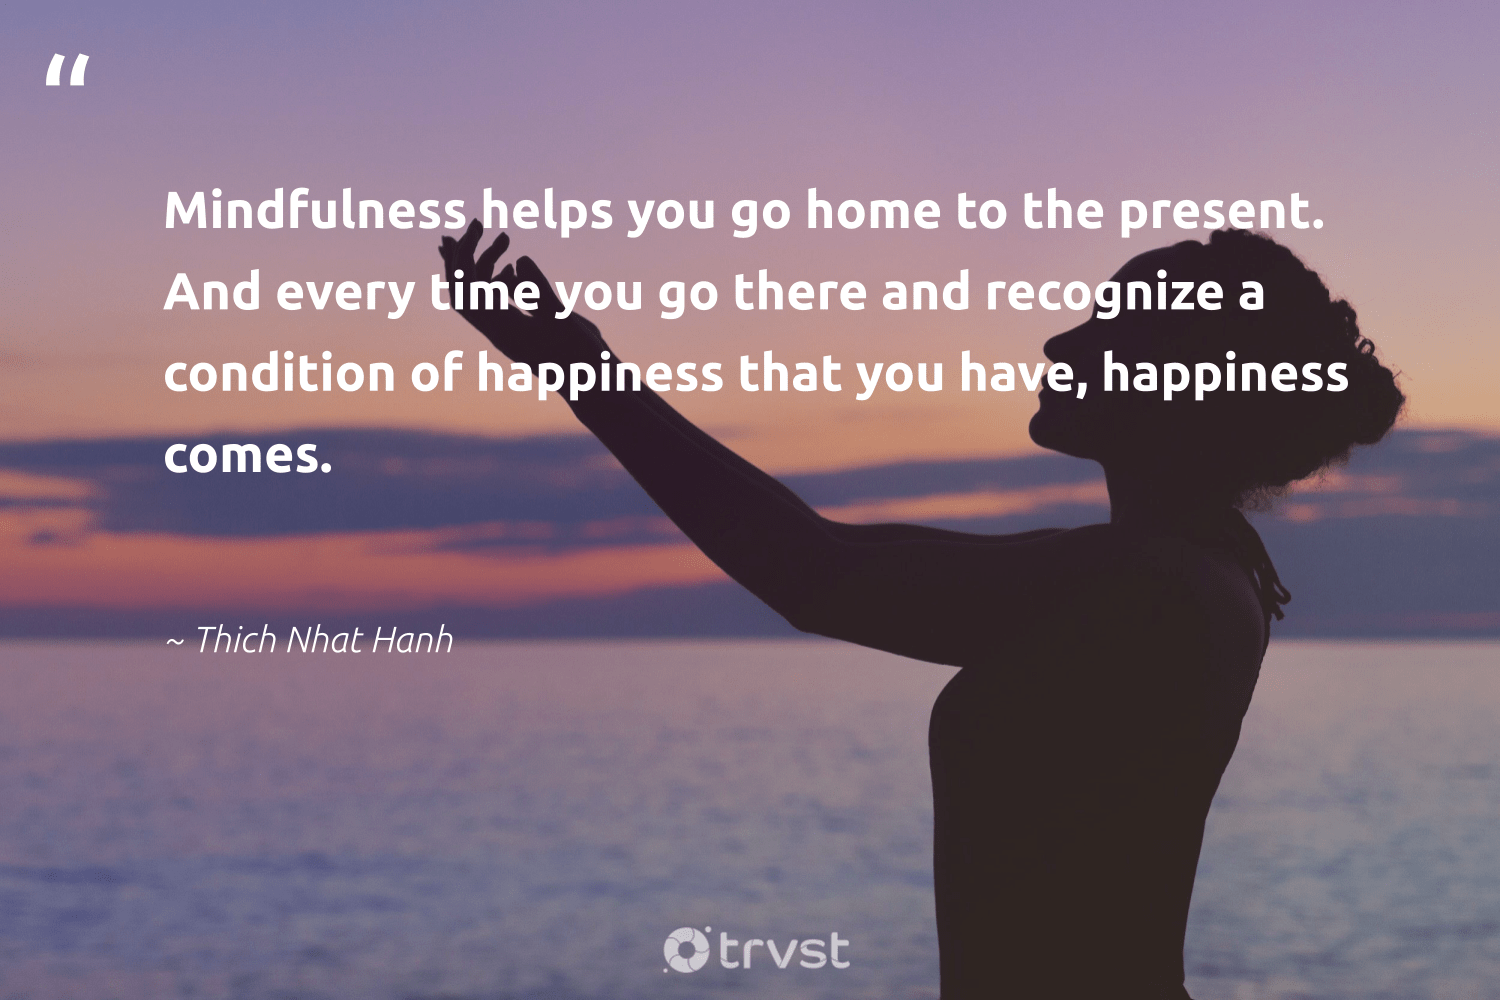 """""""Mindfulness helps you go home to the present. And every time you go there and recognize a condition of happiness that you have, happiness comes.""""  - Thich Nhat Hanh #trvst #quotes #happiness #mindfulness #mindful #mentalheatlh #nevergiveup #gogreen #creativemindset #positivity #togetherwecan #collectiveaction"""